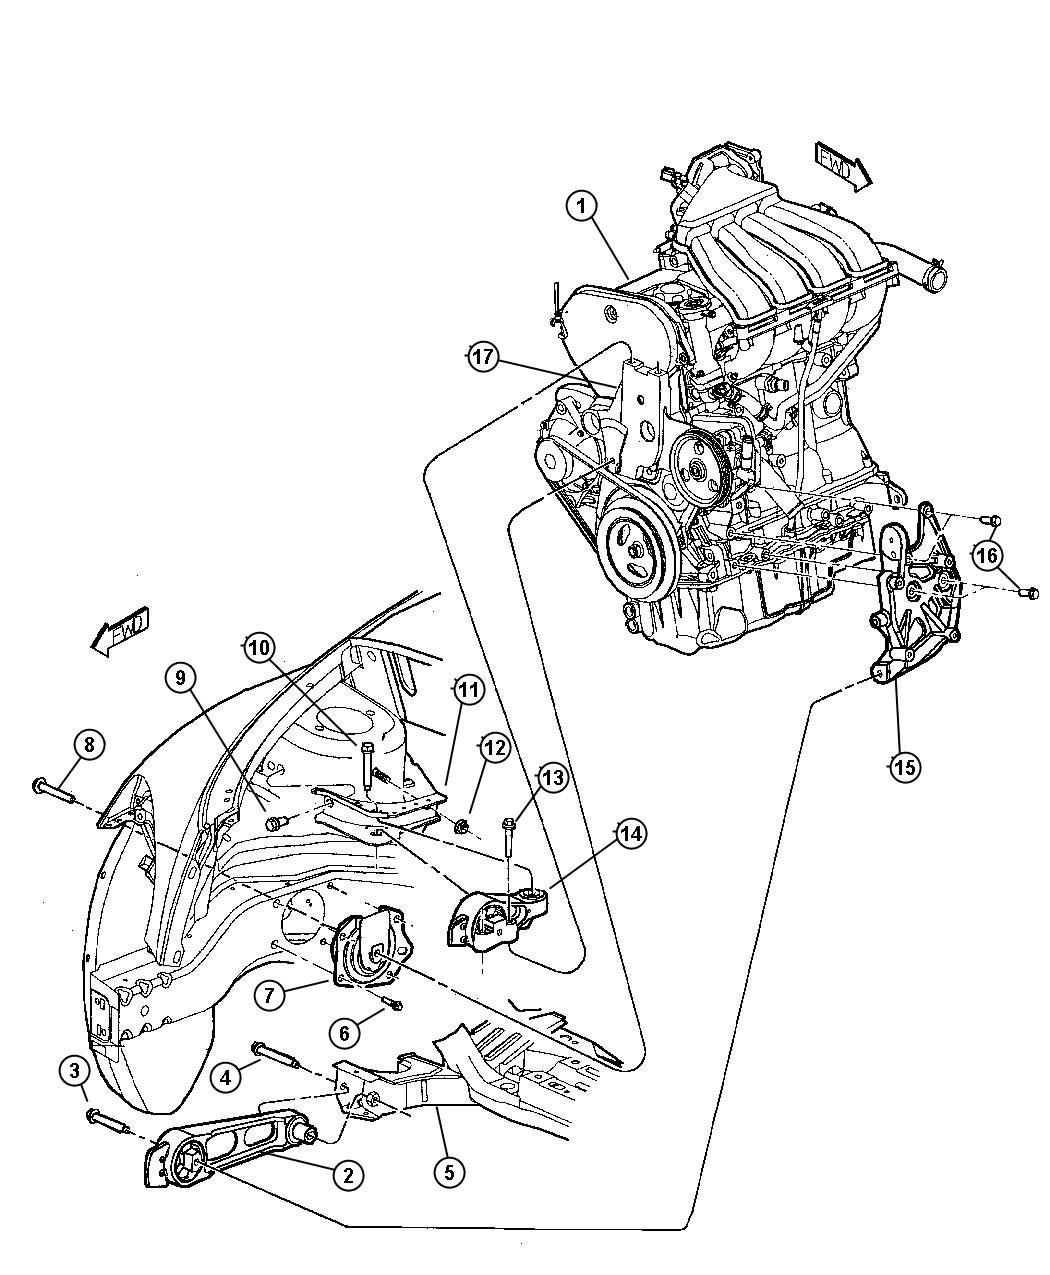 Chrysler Pacifica Engine Diagram Ac Circuit And Wiring Additionally Sony Xav Besides Xplod For Discover Your Pt Cruiser Transmission Mount Location